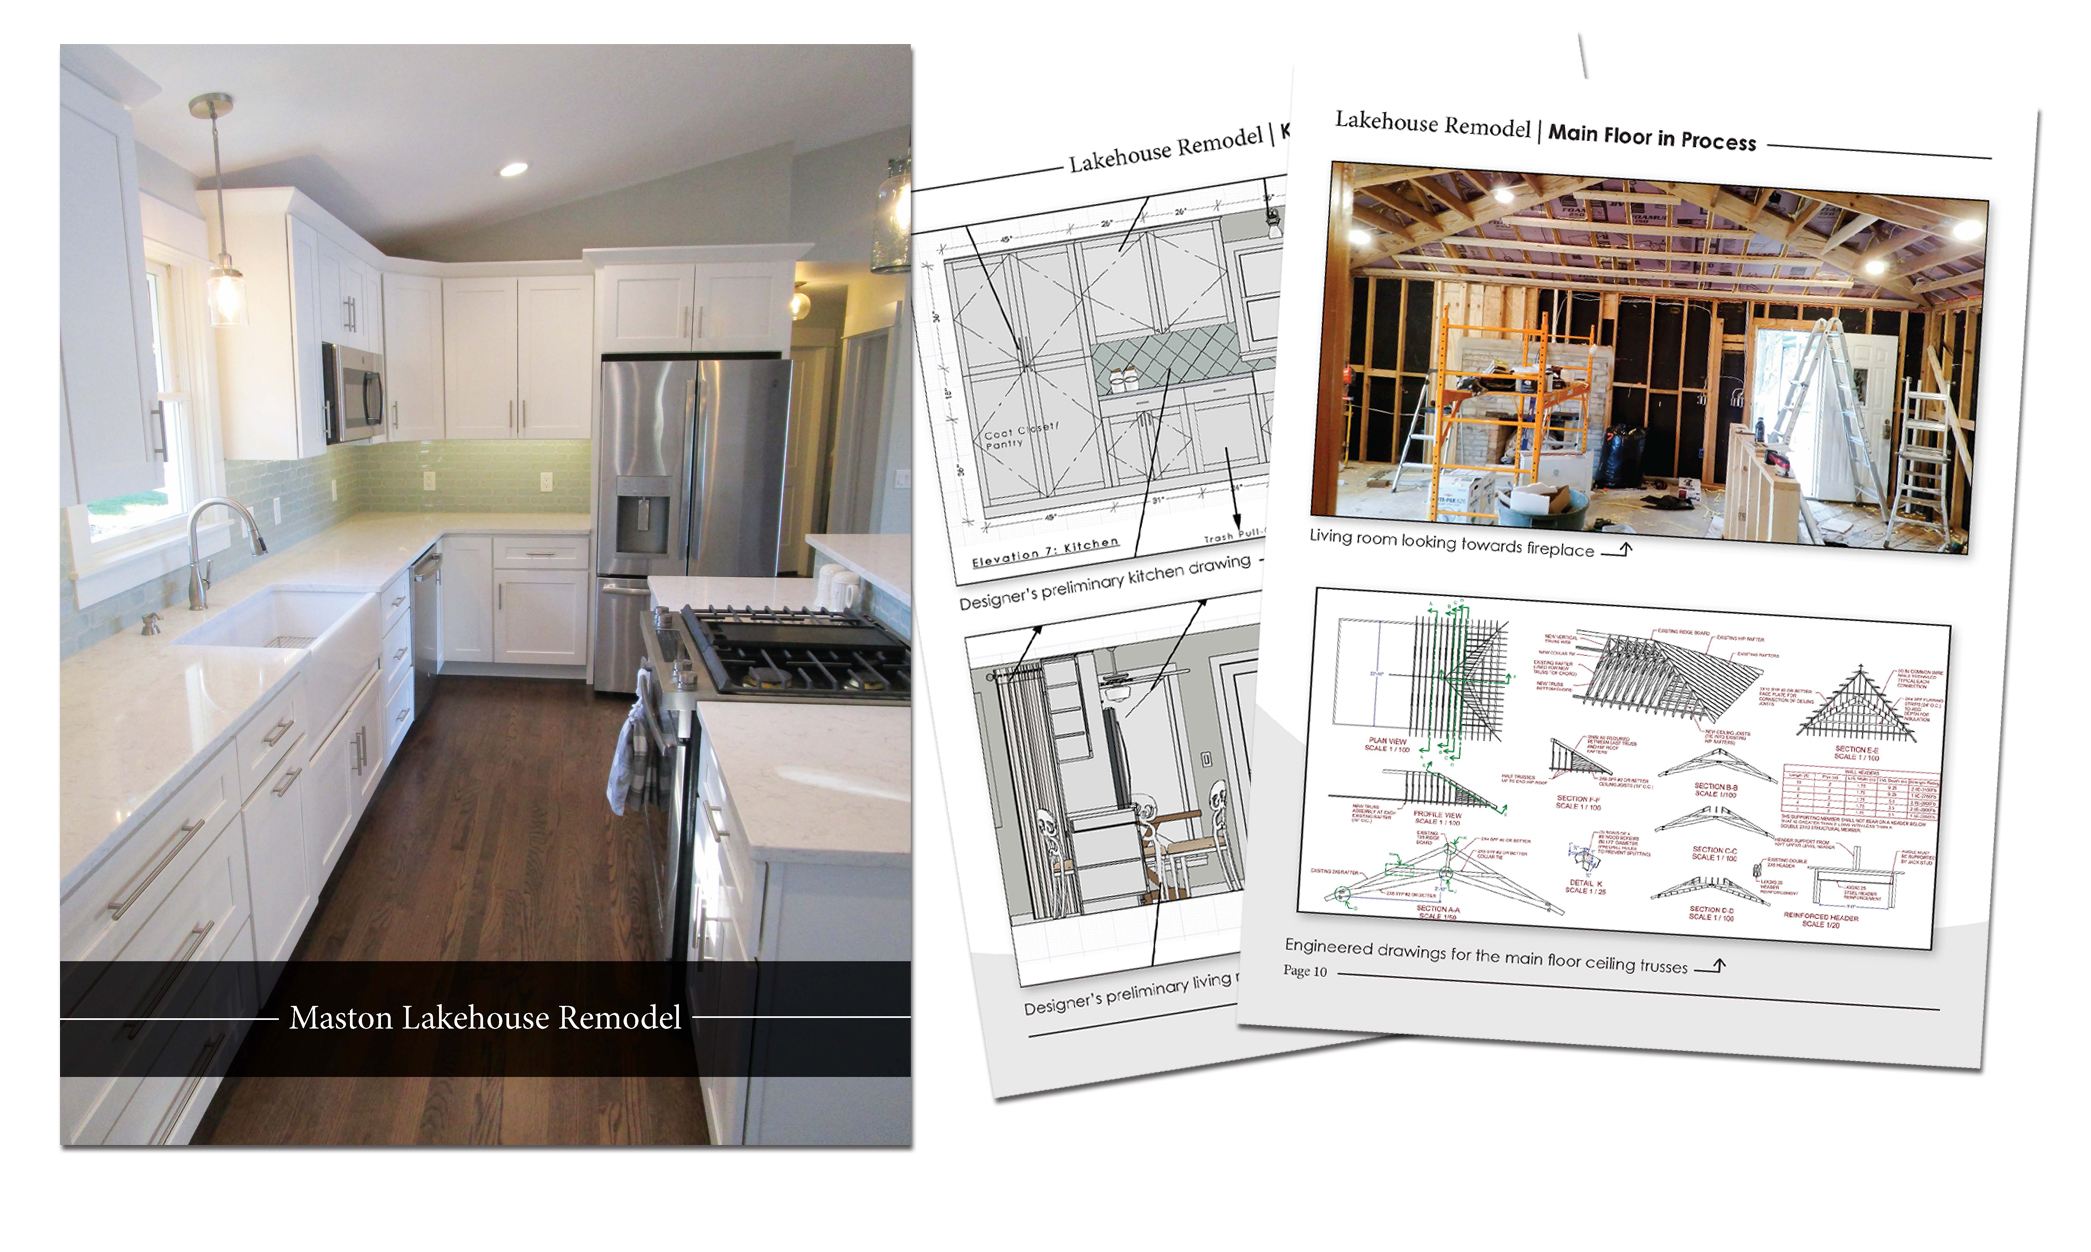 Remodel Guide - View plans, drawings, designs and detailed before and after photos of the lakehouse.